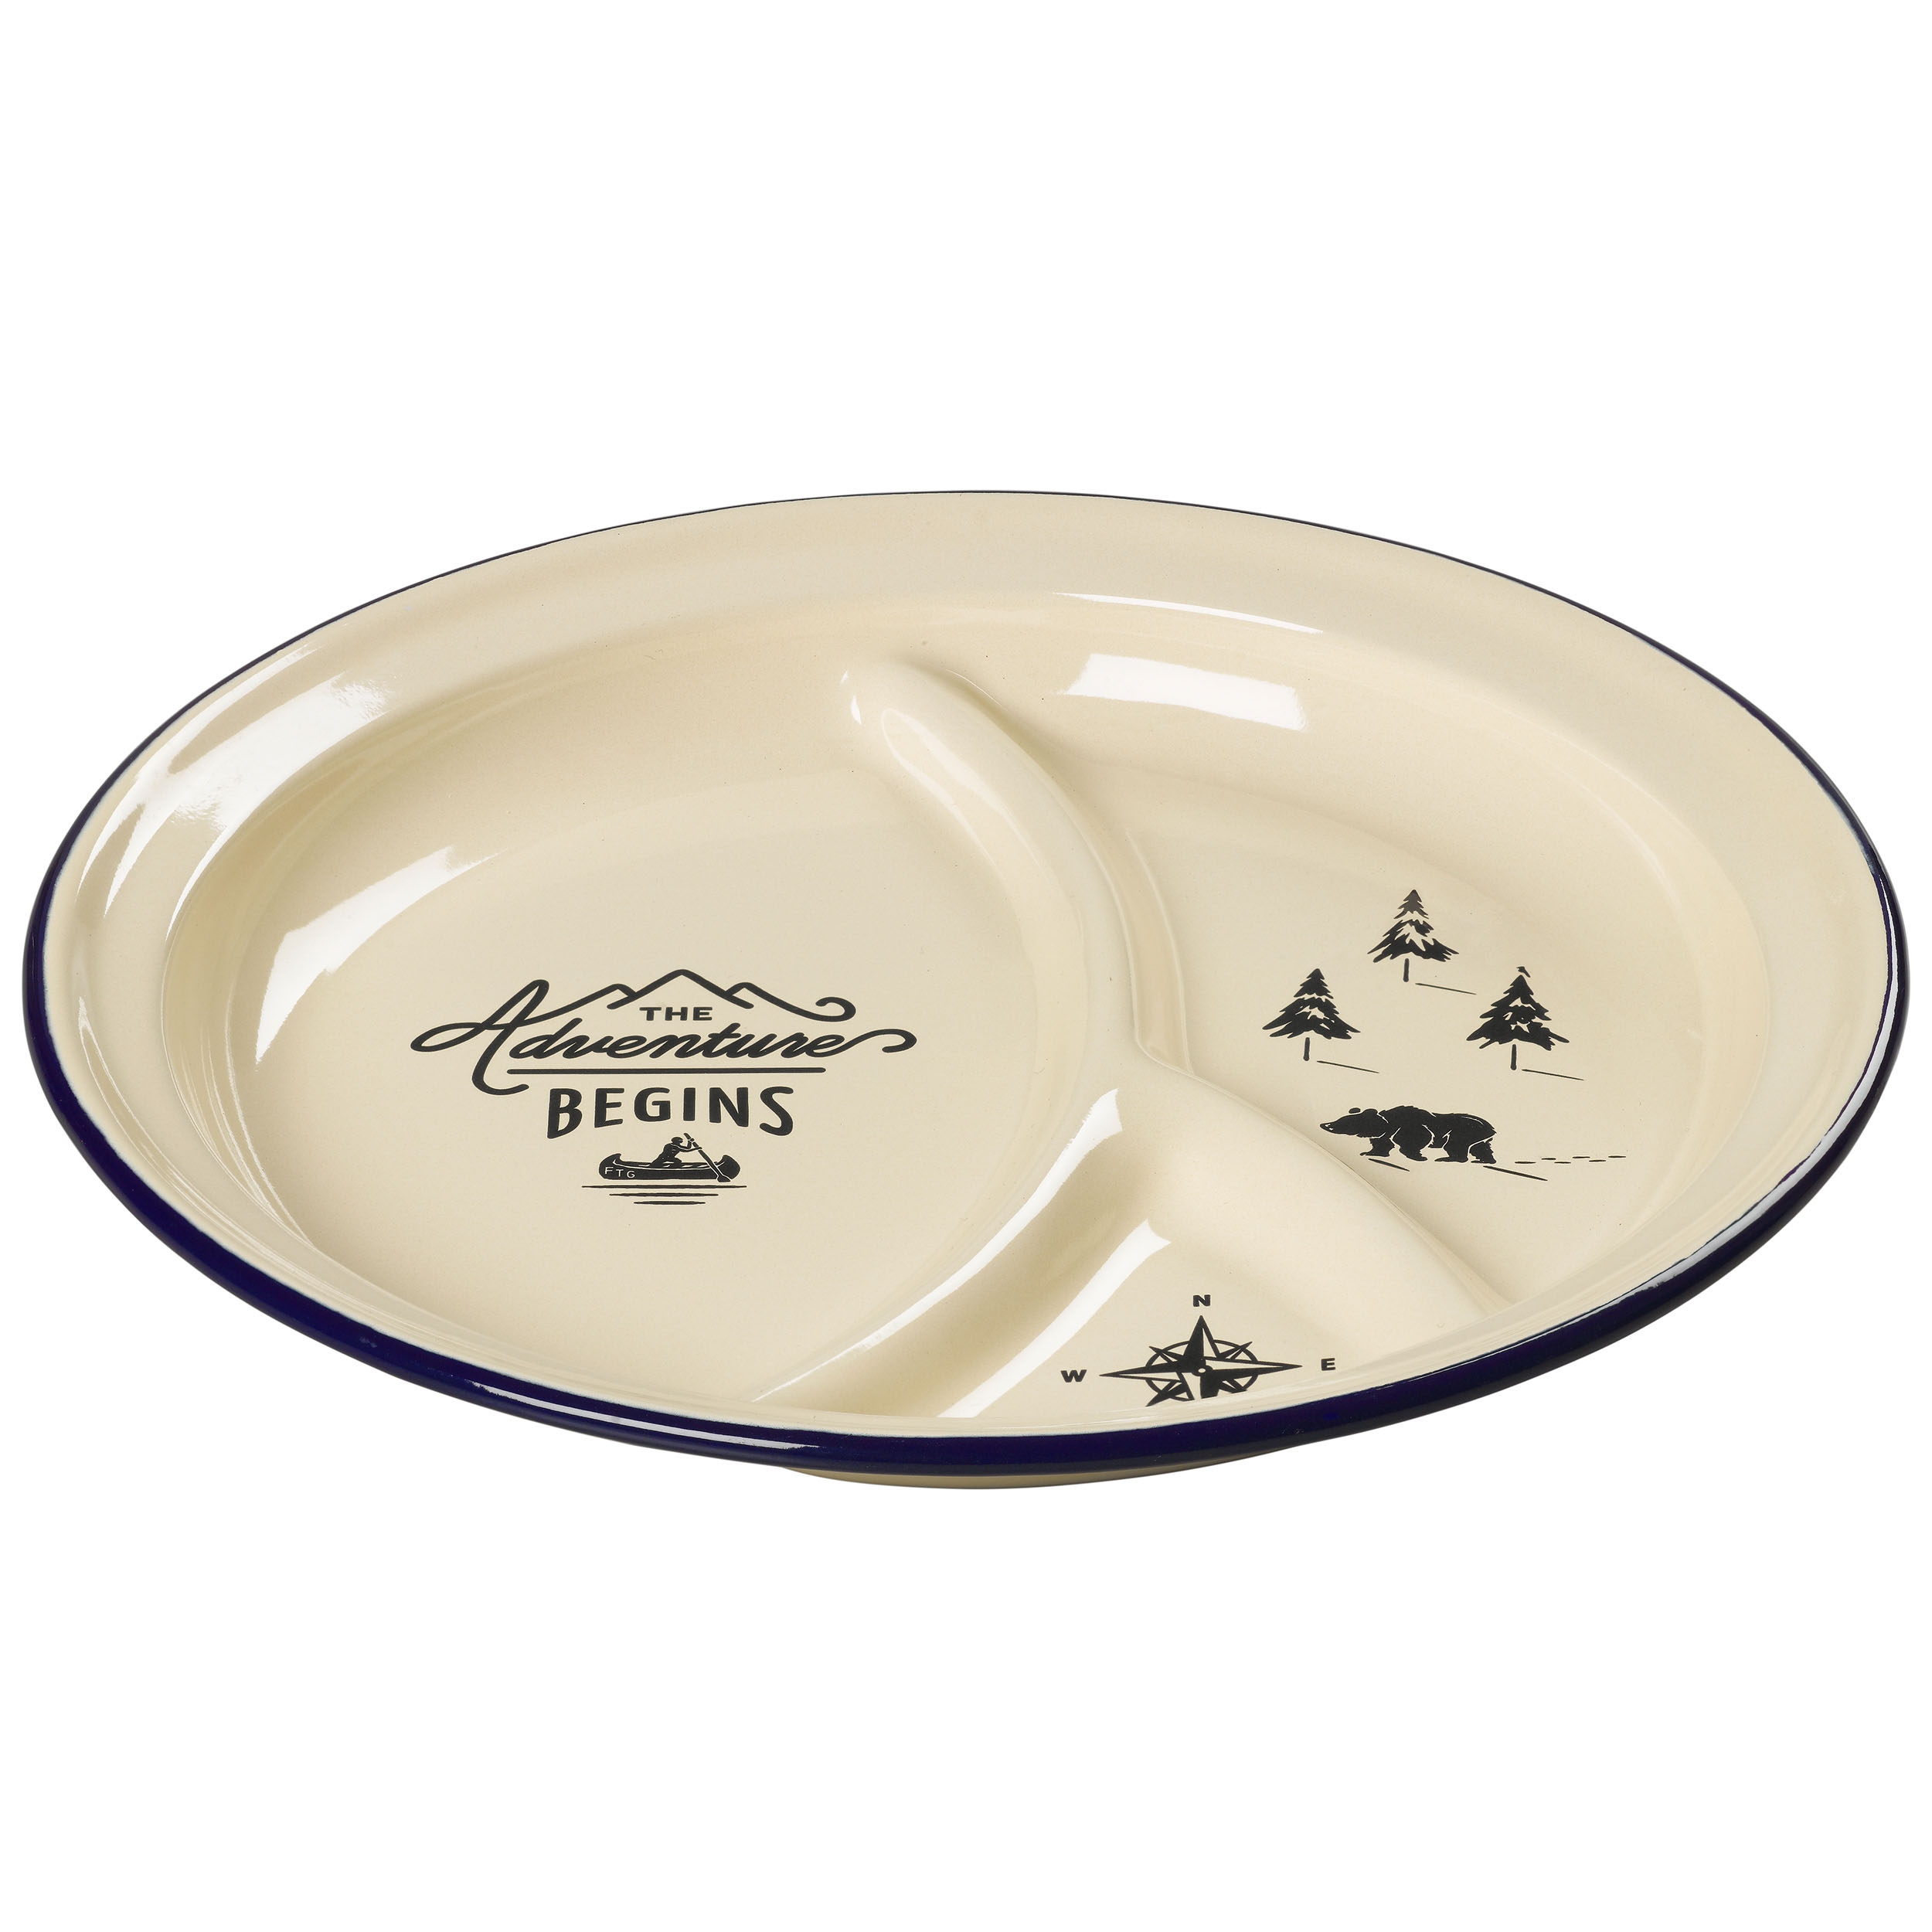 Enamel Divided Plate